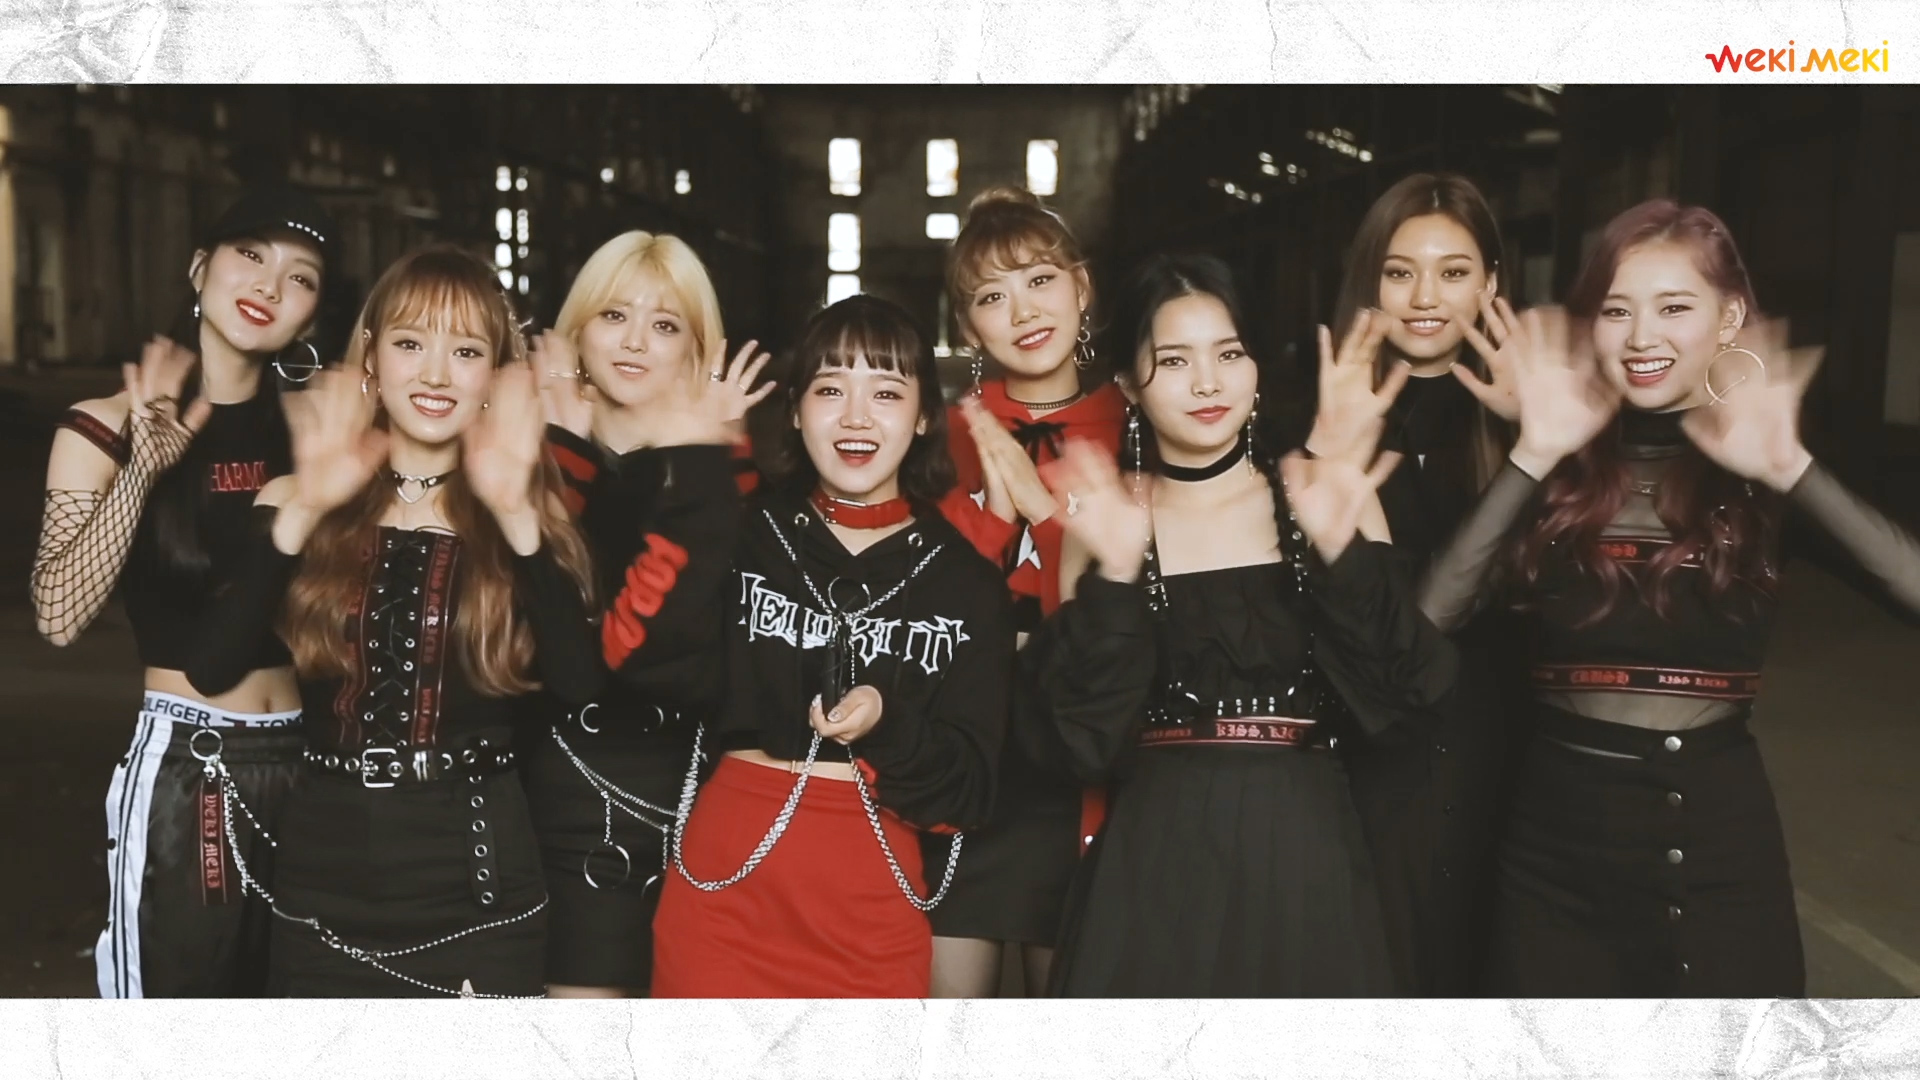 Weki Meki 위키미키 - 1st Single Album 발매 기념 Greeting to KILING